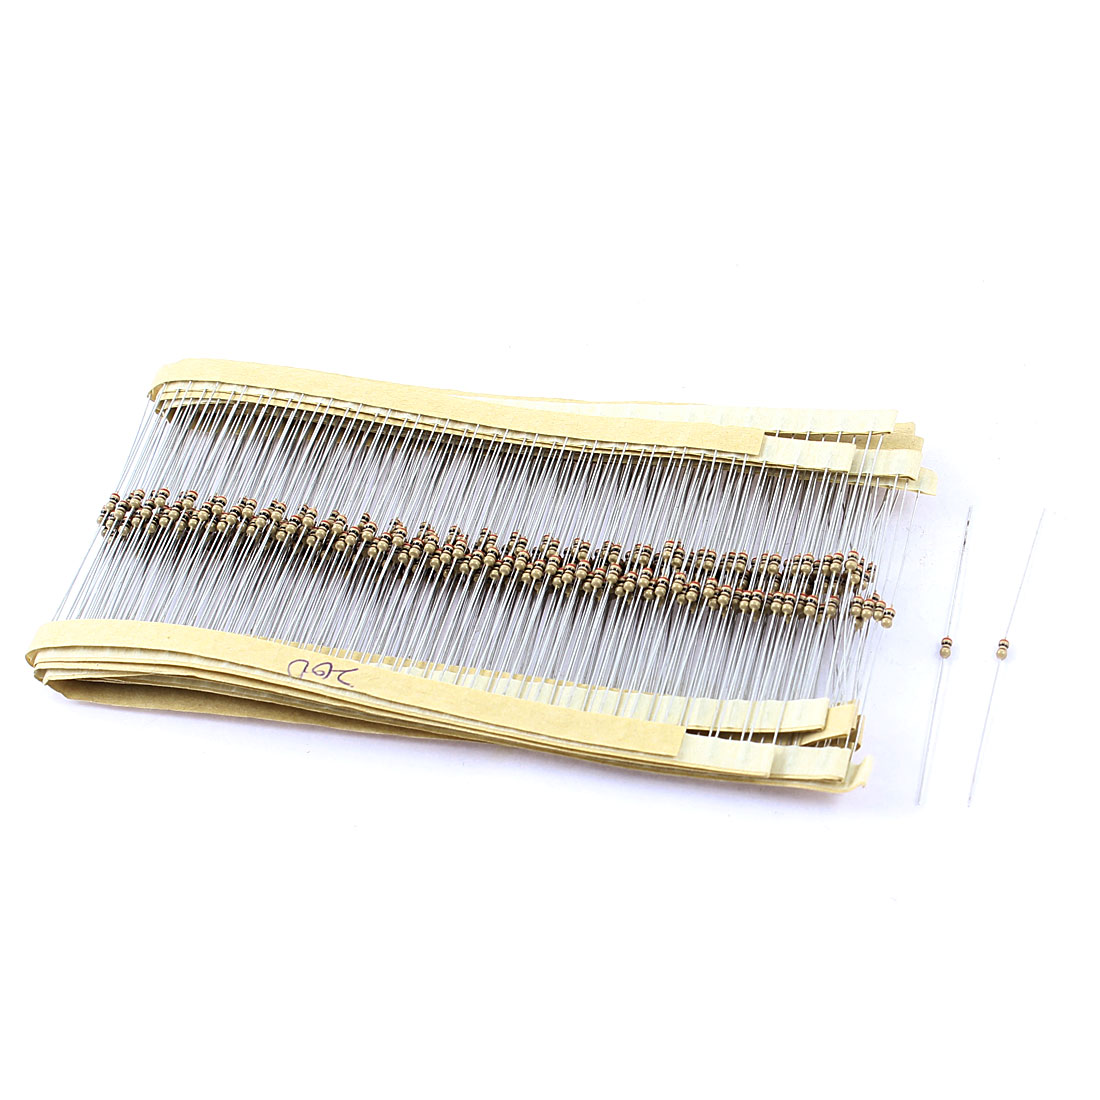 400PCS 1/4W 5% Tolerance 200R Through Hole Carbon Film Resistors